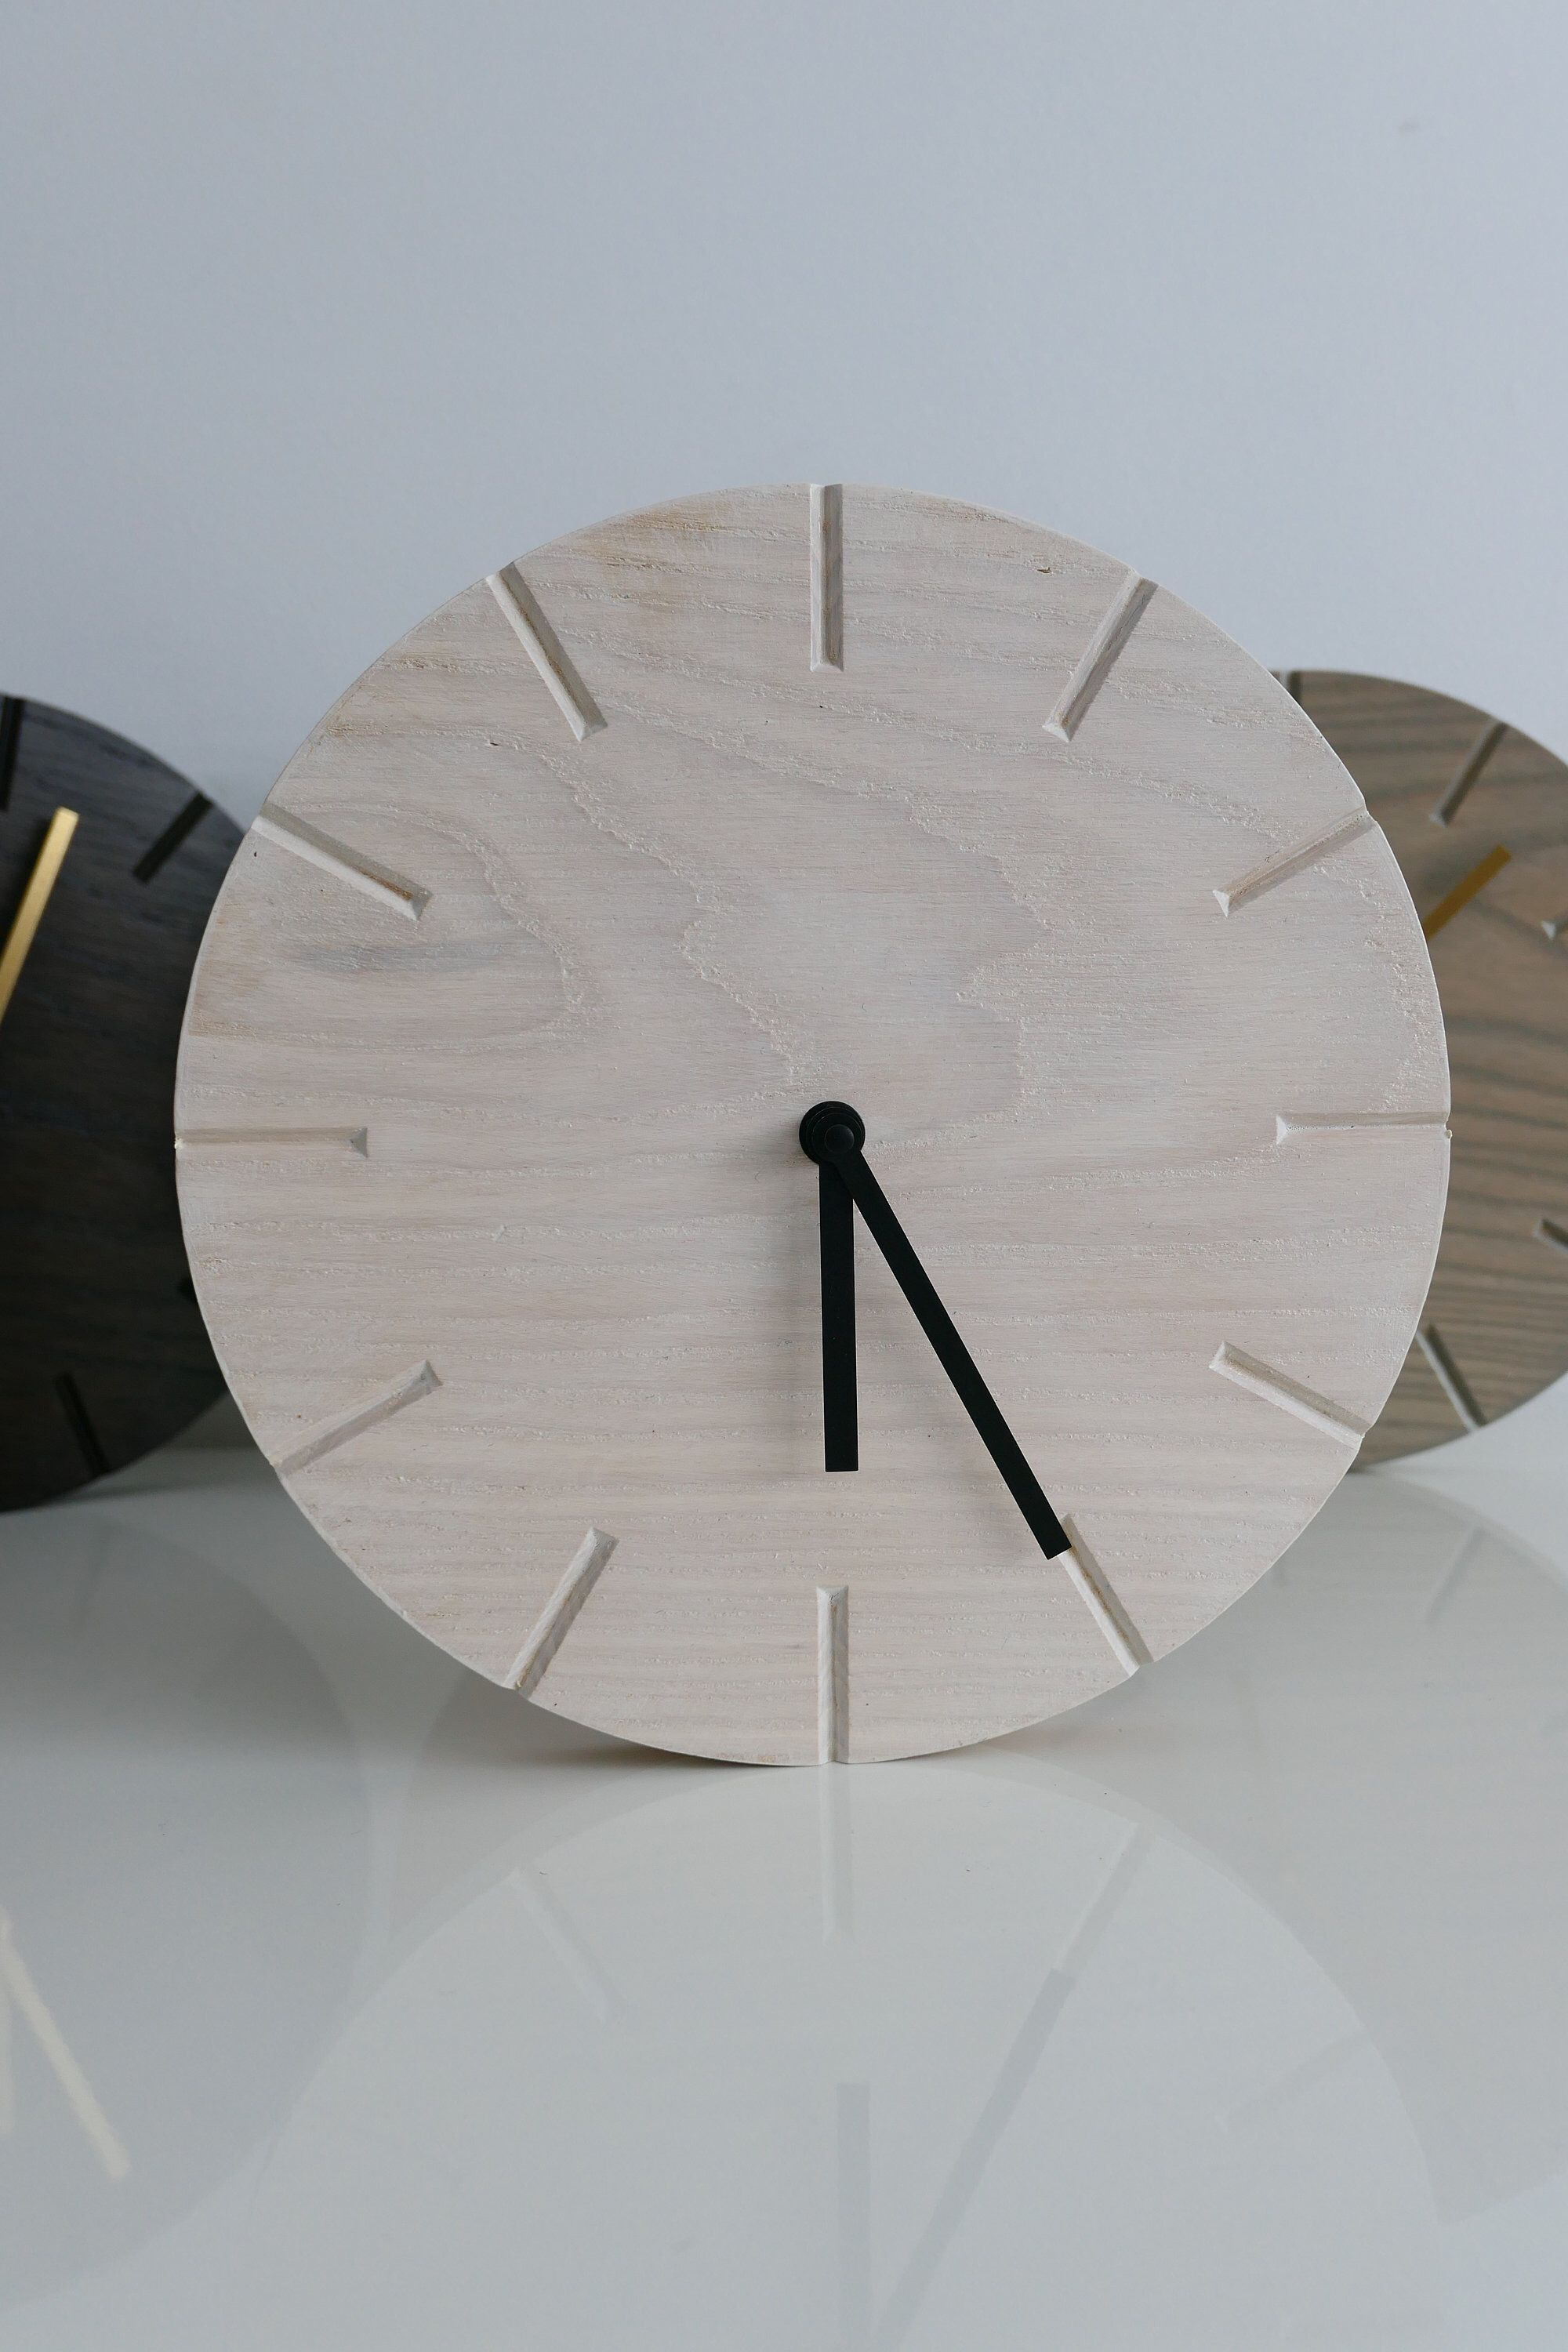 Pin by dchamp designs on Modern clocks | Minimalist clocks